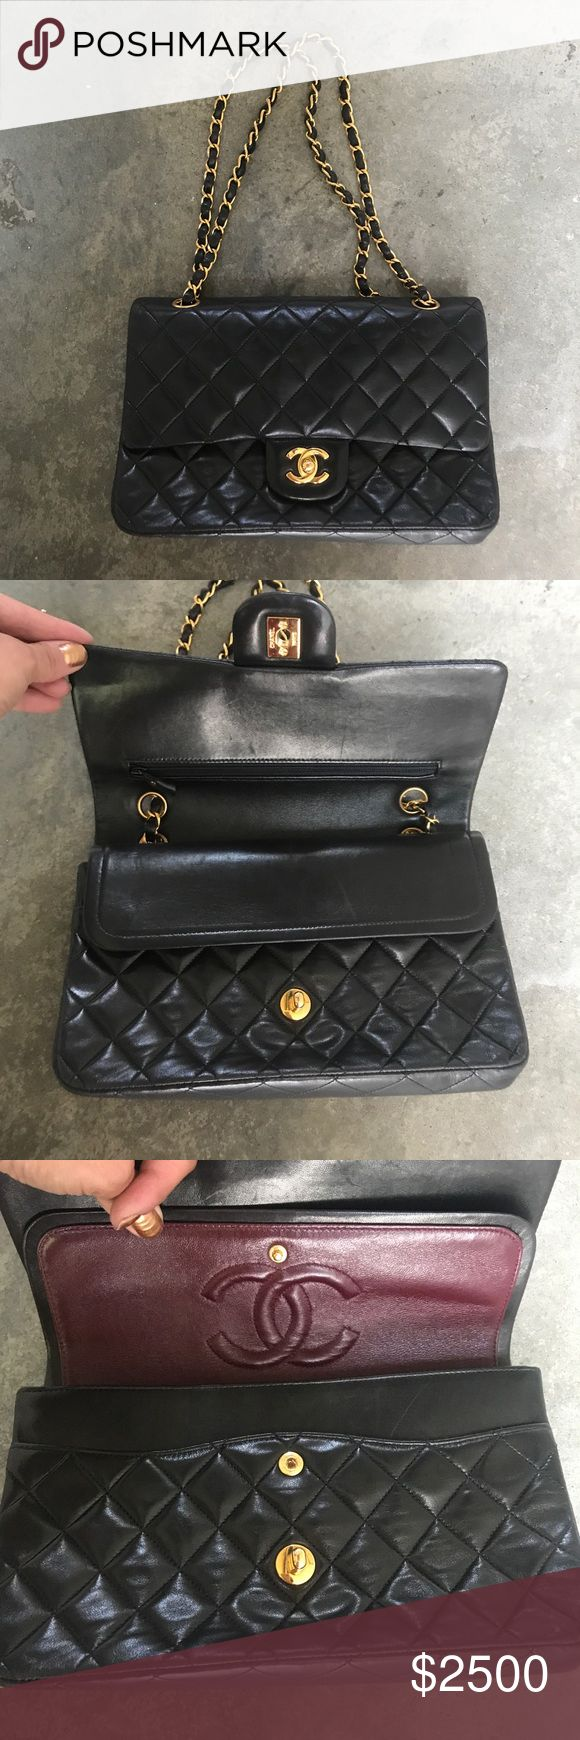 """Authentic CHANEL Classic Flap Chain Shoulder Bag New without tags. 10""""x6.25""""x2.55. Gorgeous Lamb skin leather bag. CHANEL Bags Shoulder Bags"""